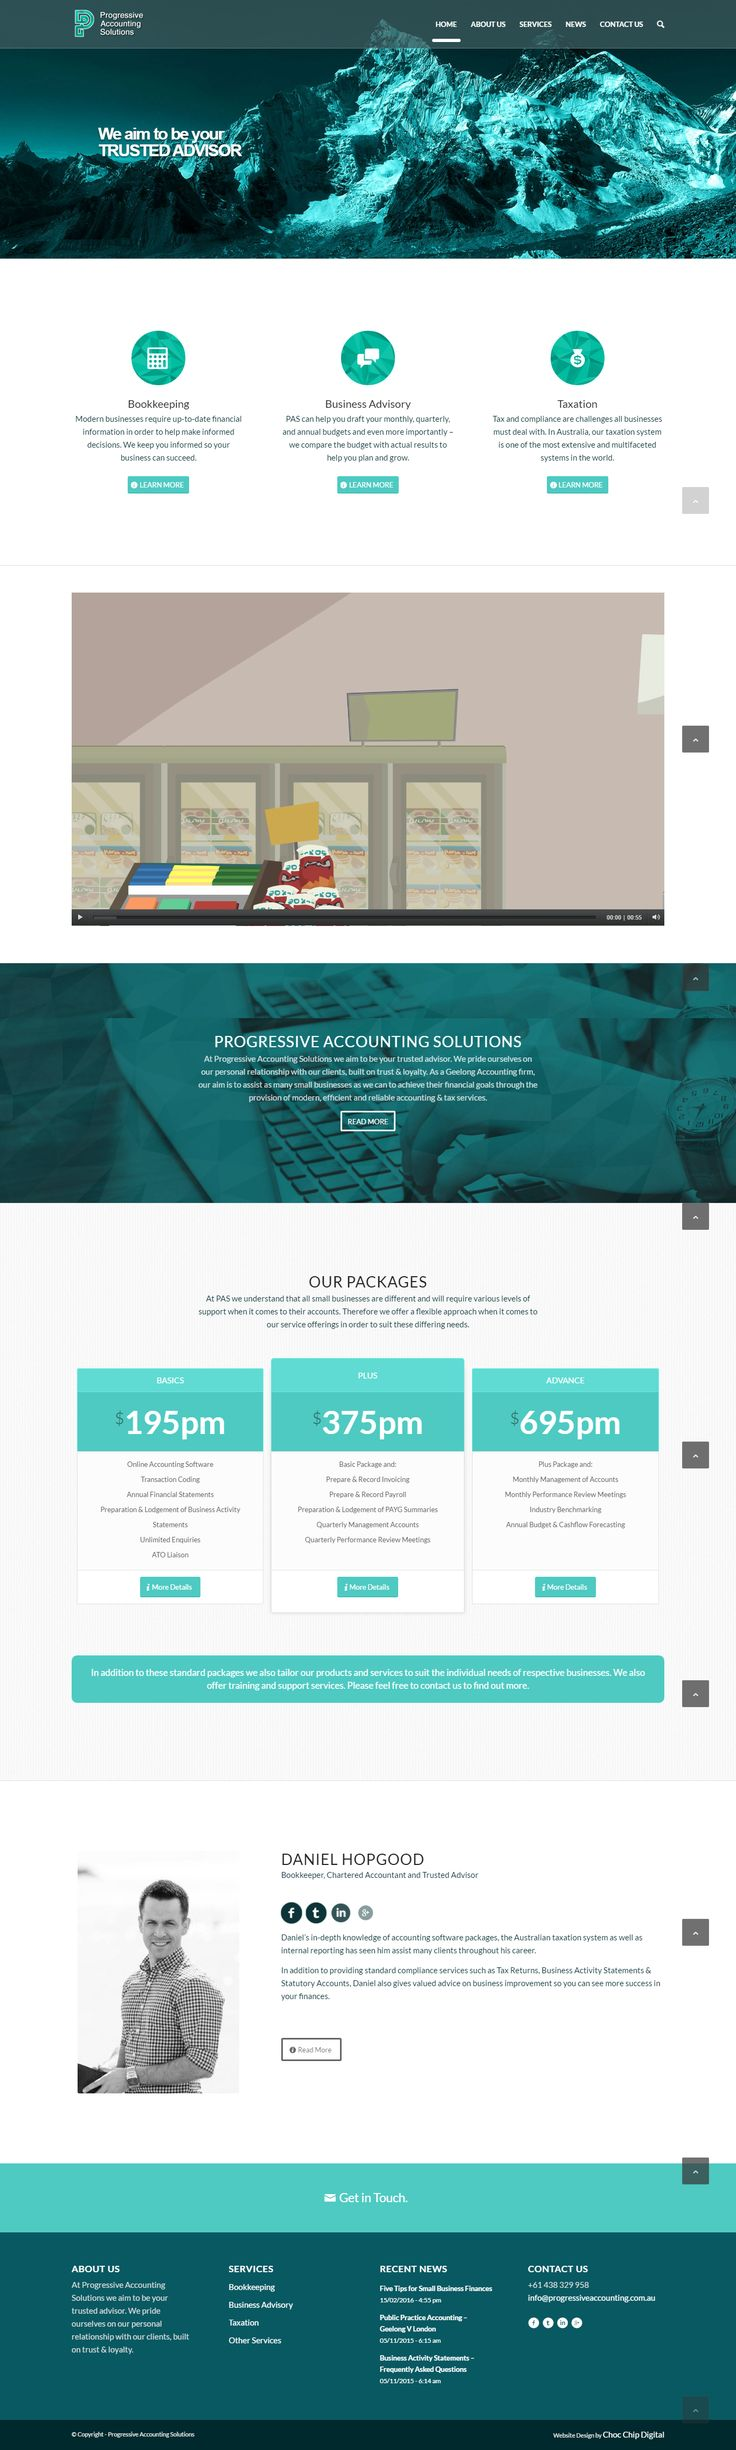 A contemporary, high tech accounting firm needed a website to match.  Progressive Accounting Solutions is young, nimble, accounting and book keeping firm that needed to launch a new website with a contemporary image to match the cloud accounting and modern techniques that they offer. A strong visual brand and active social media promotion provide the foundation for ongoing success.